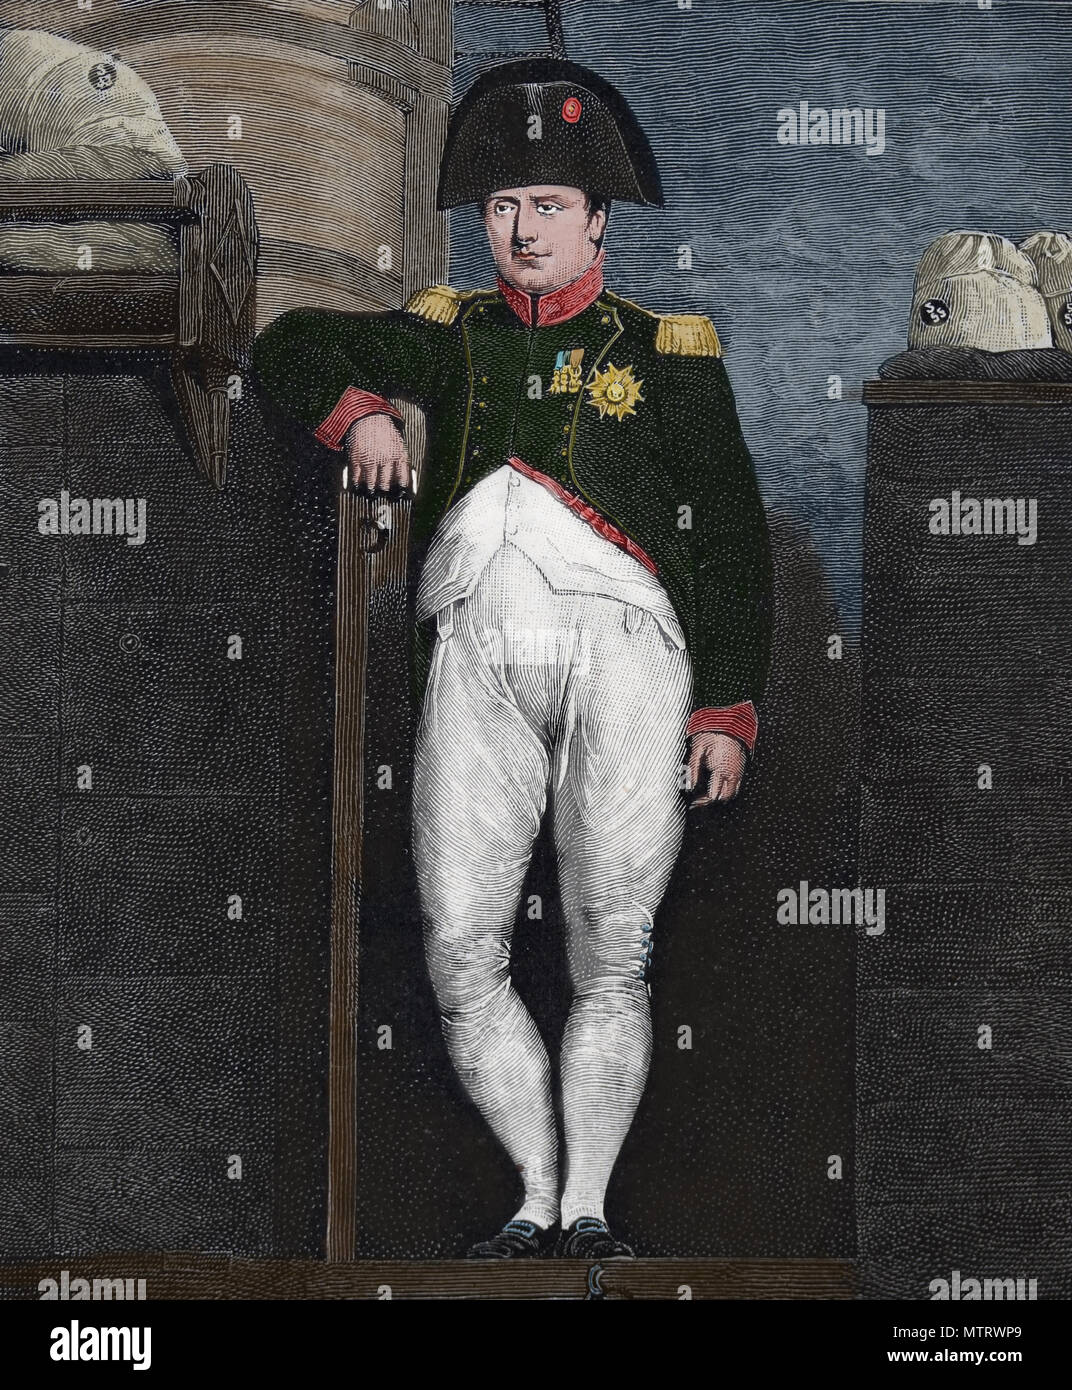 Napoleon I on board the HMS Bellerophon (UK). Napoleon's surrender. 1815. Portrait by Charles Lock Eastlake. - Stock Image